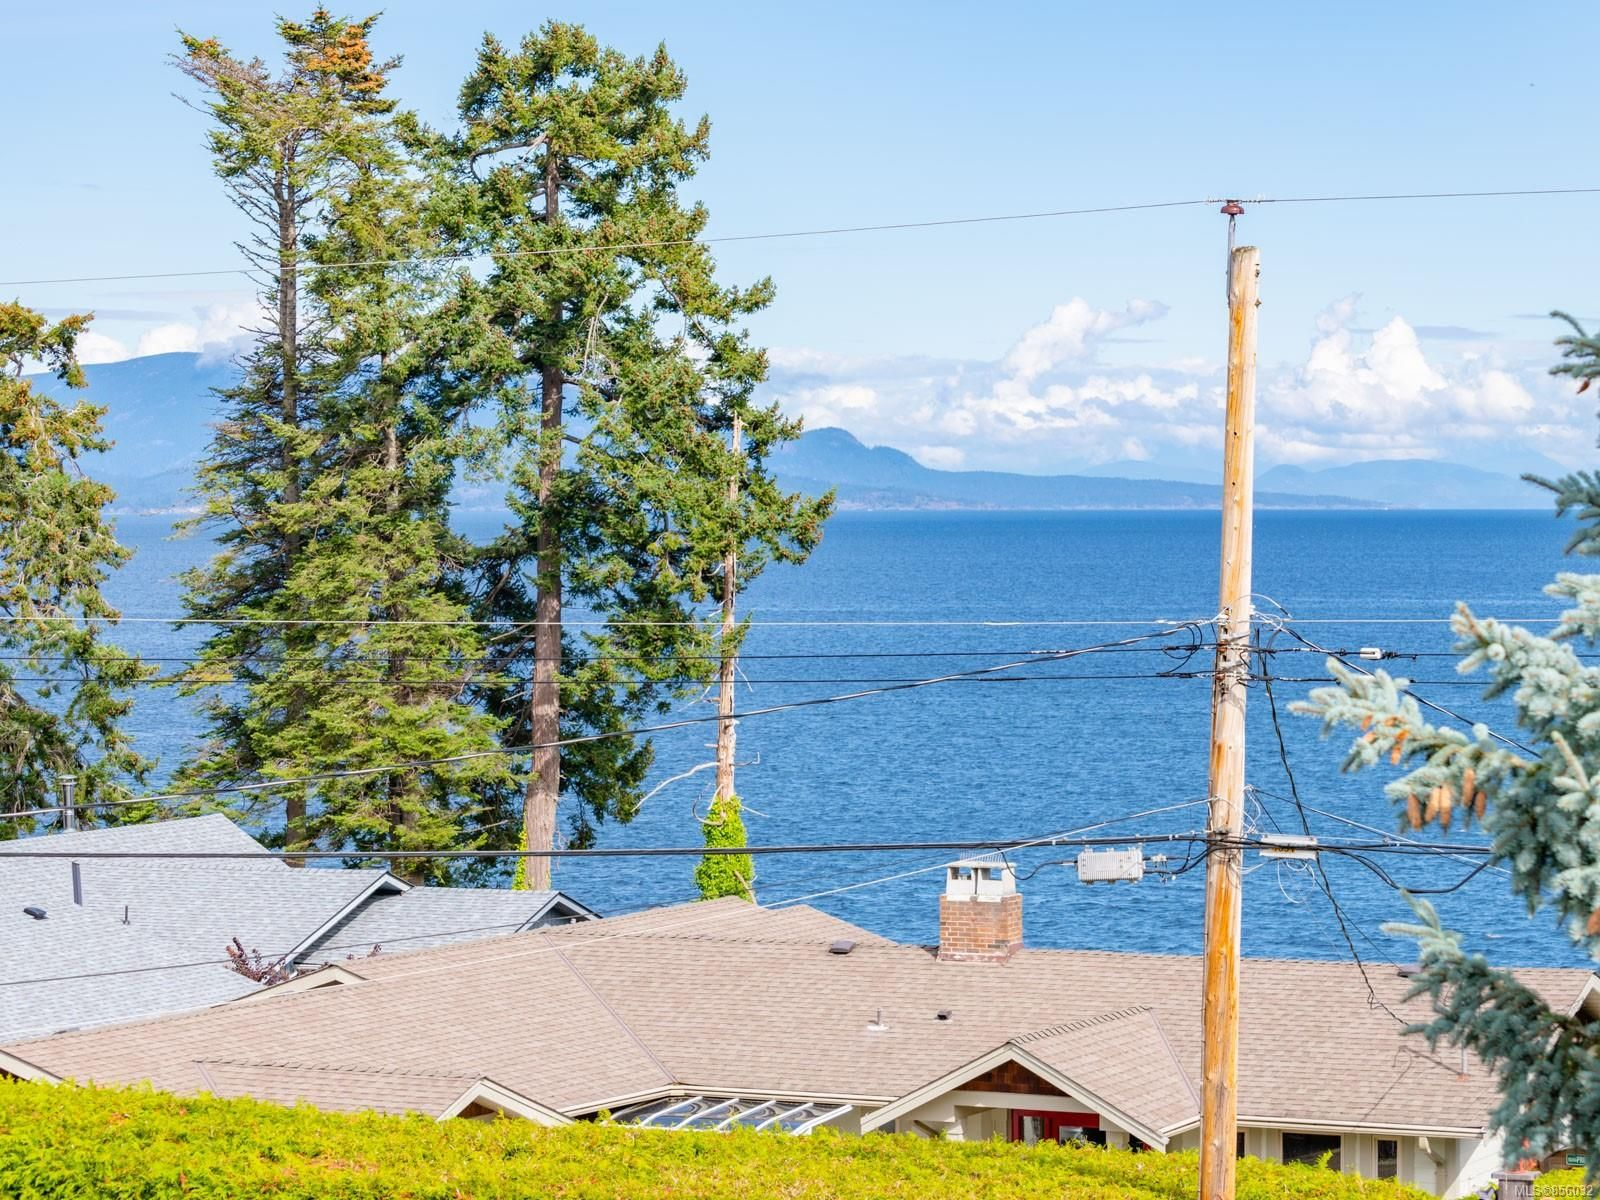 Main Photo: 1383 Reef Rd in : PQ Nanoose House for sale (Parksville/Qualicum)  : MLS®# 856032